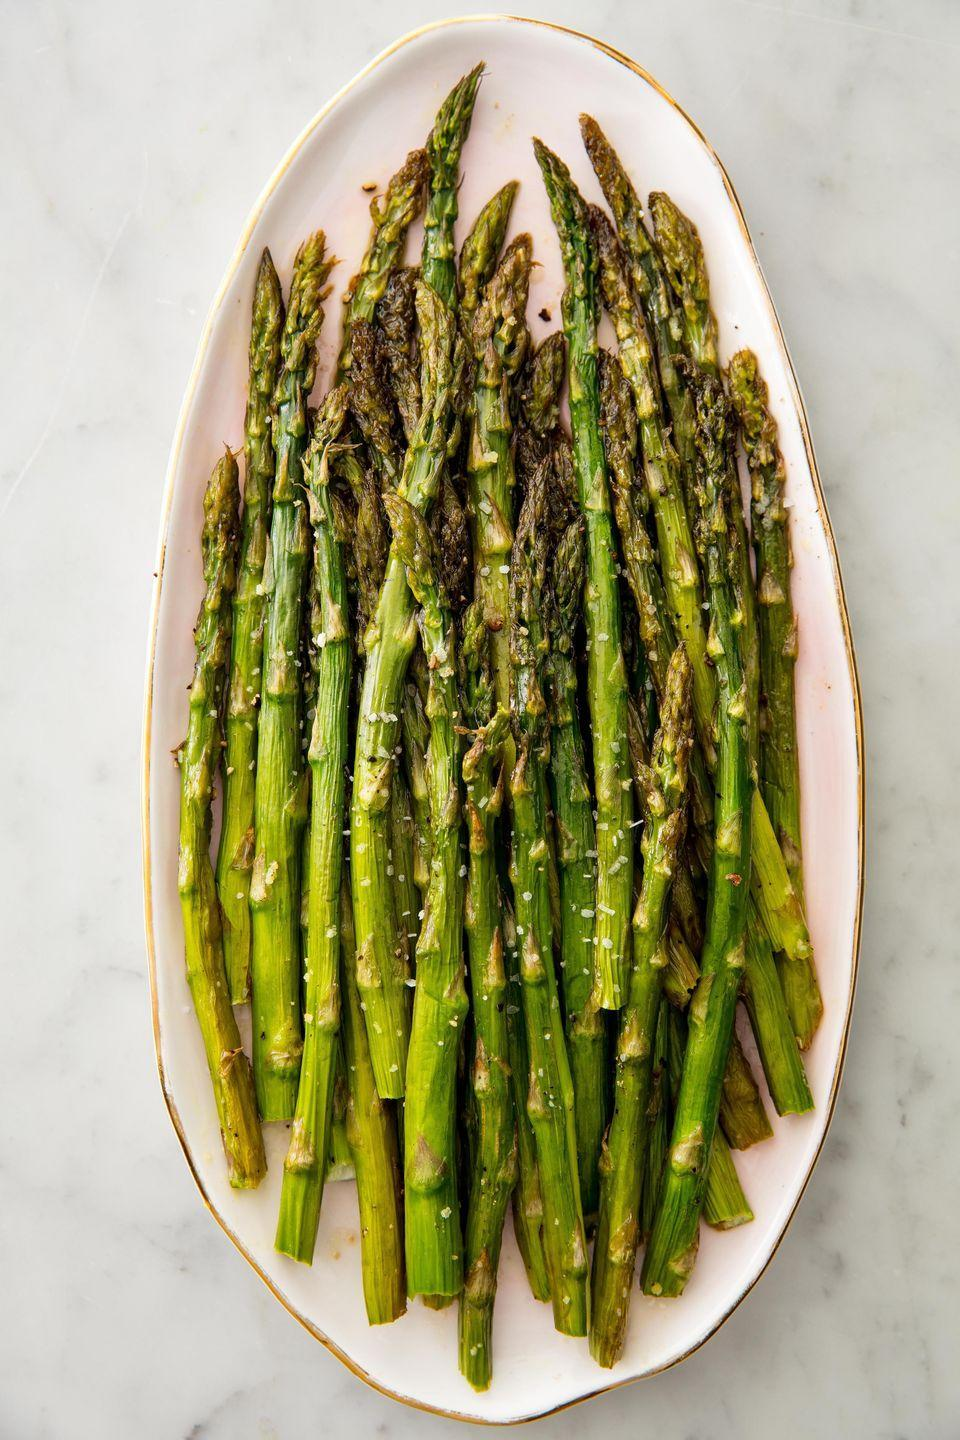 """<p>This easy side will complement any meal.</p><p>Get the recipe from <a href=""""https://www.delish.com/cooking/recipe-ideas/recipes/a58375/oven-roasted-asparagus-recipe/"""" rel=""""nofollow noopener"""" target=""""_blank"""" data-ylk=""""slk:Delish"""" class=""""link rapid-noclick-resp"""">Delish</a>.</p>"""